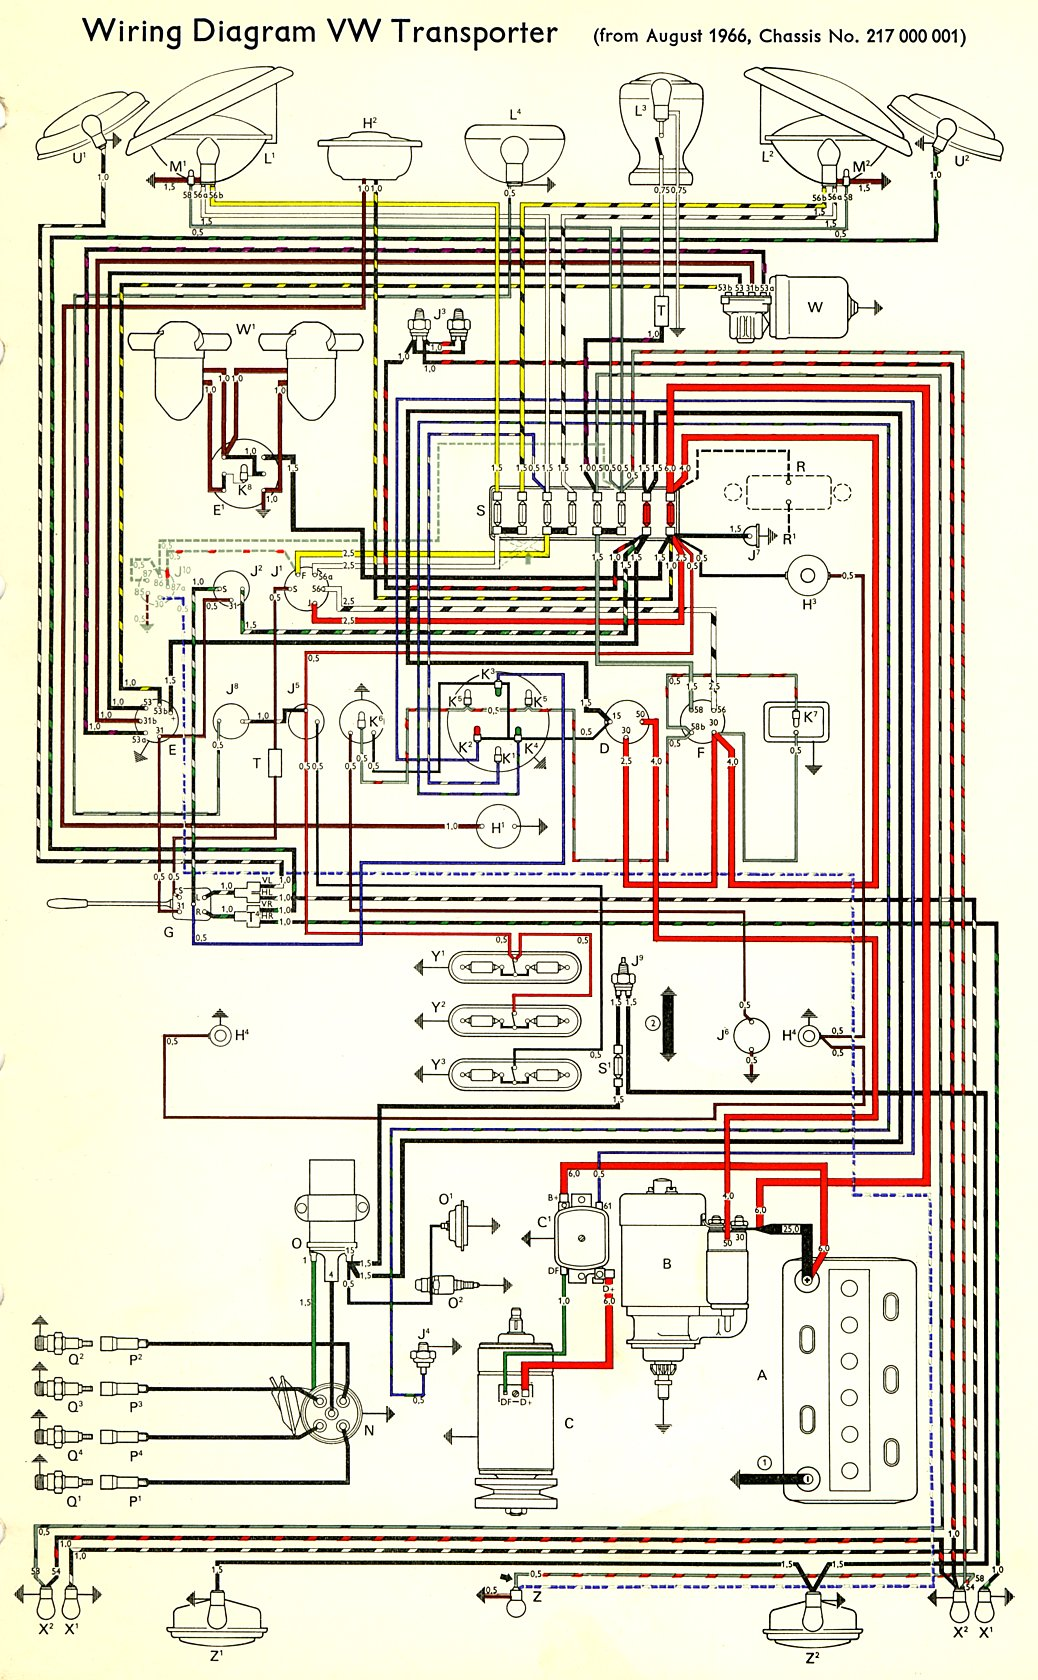 bus_67 1967 bus wiring diagram thegoldenbug com 1968 vw type 3 wiring diagram at gsmx.co